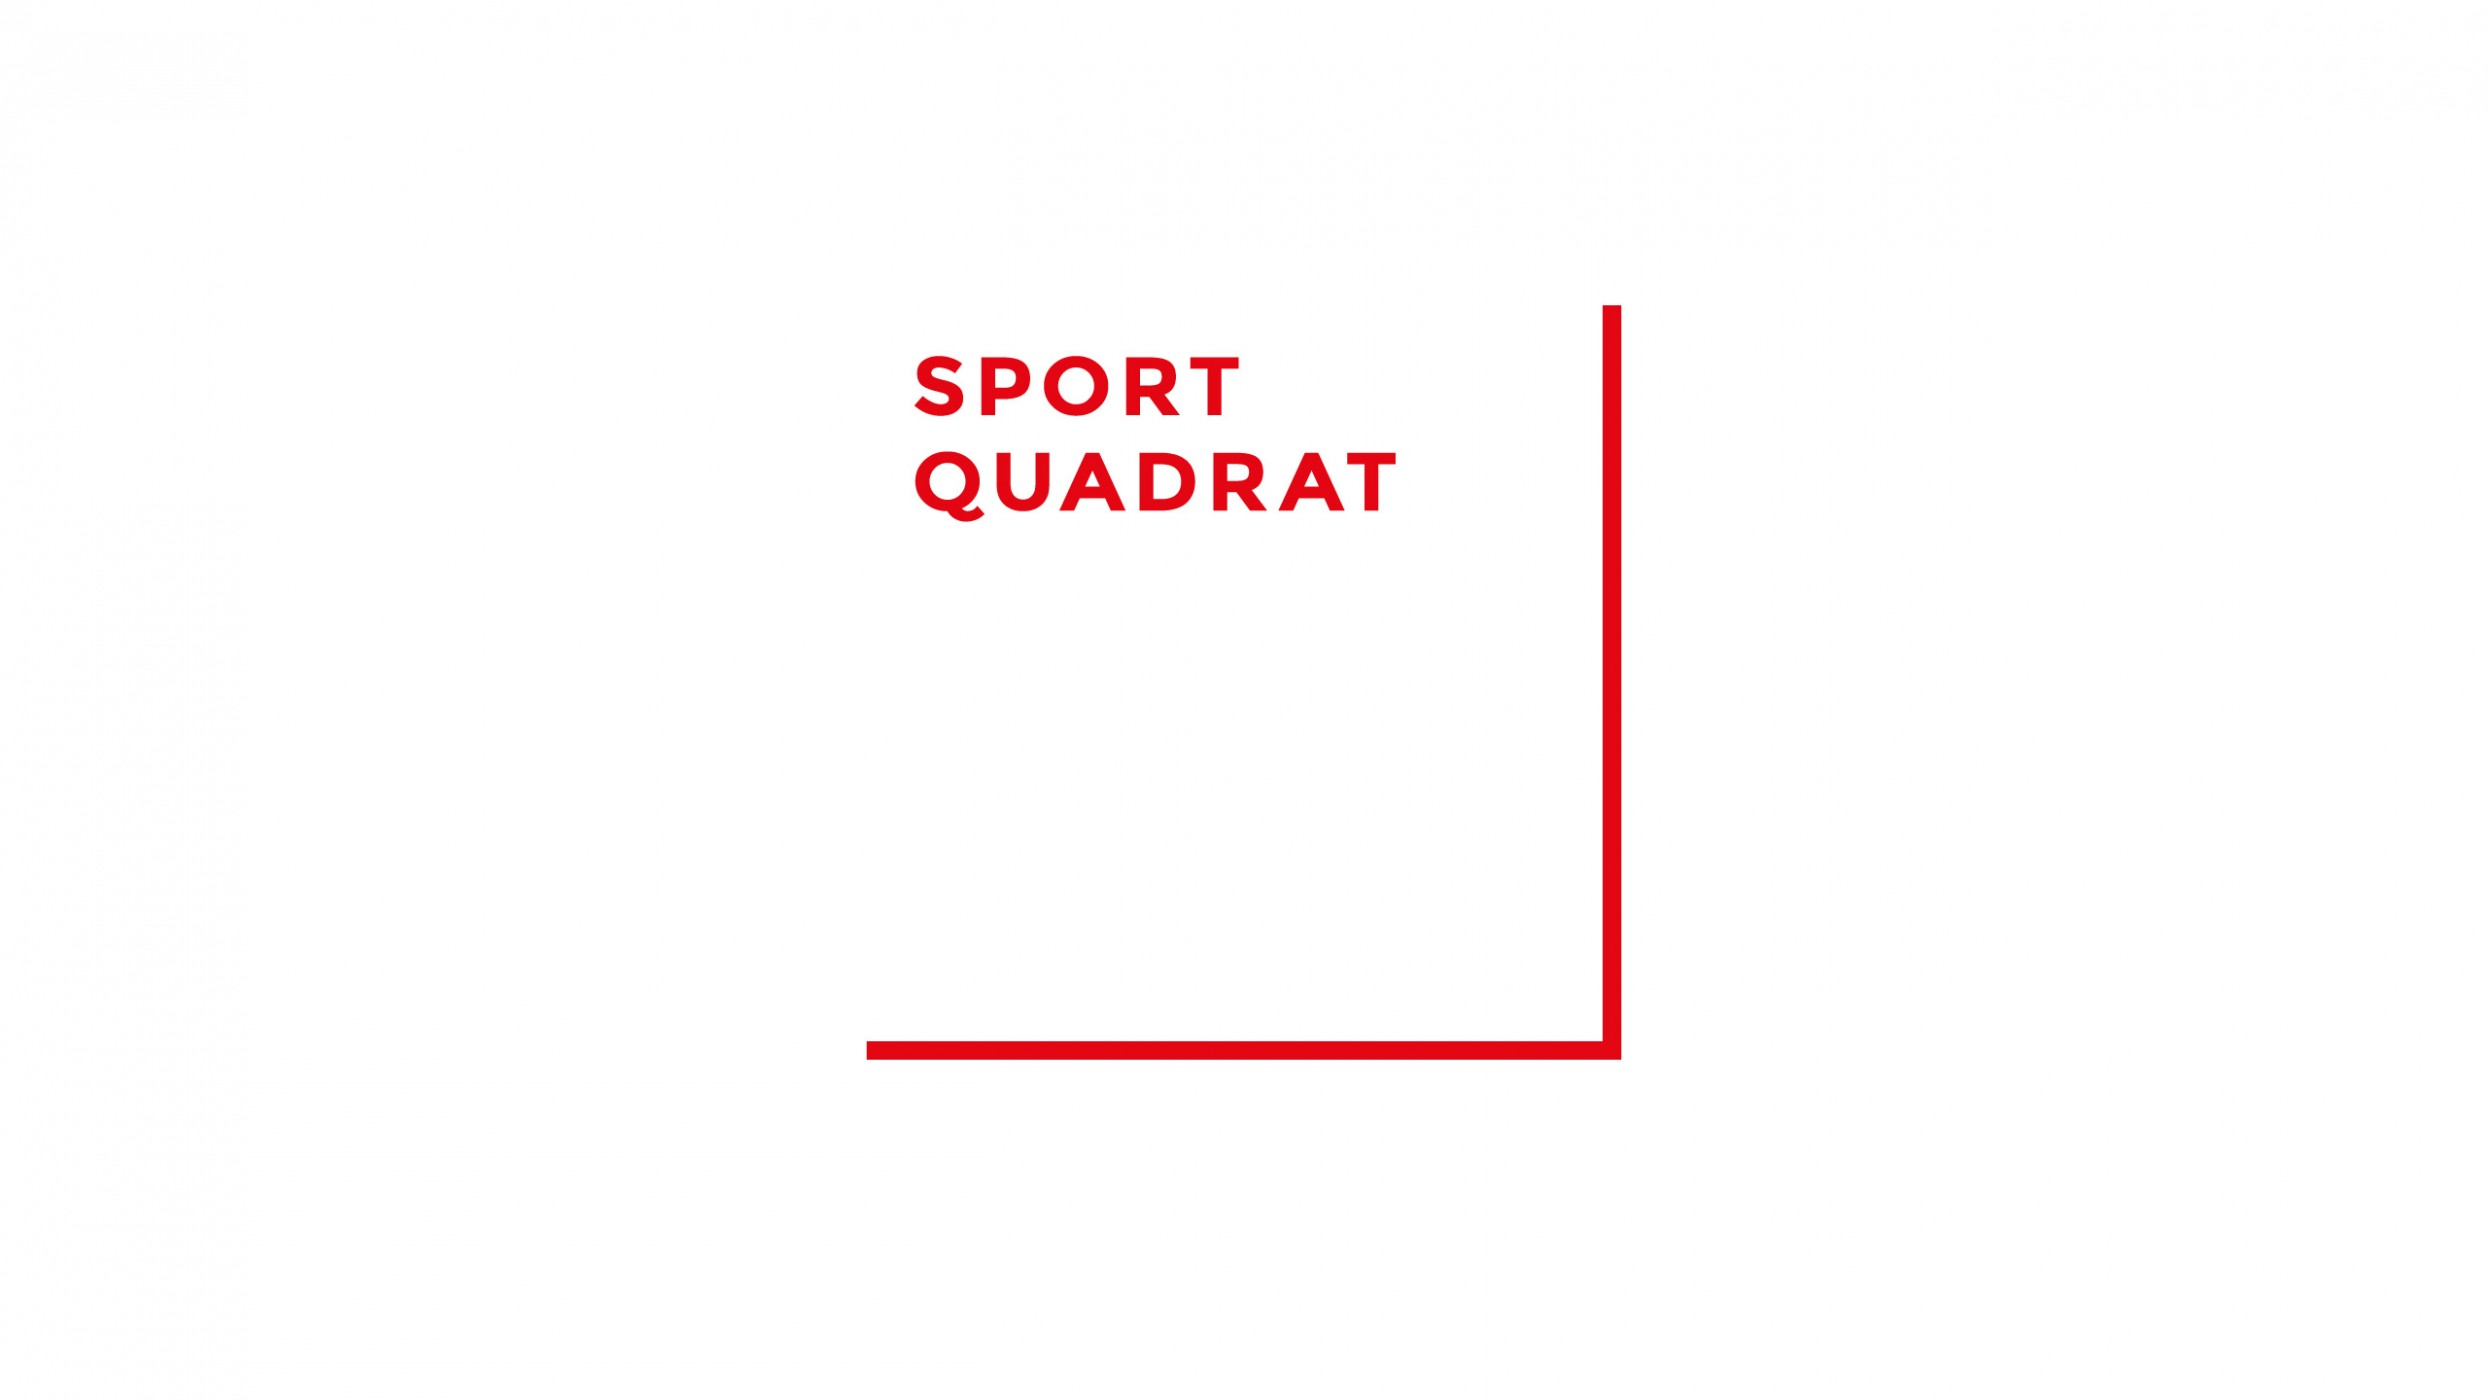 sportquadrat-corporate-design-01